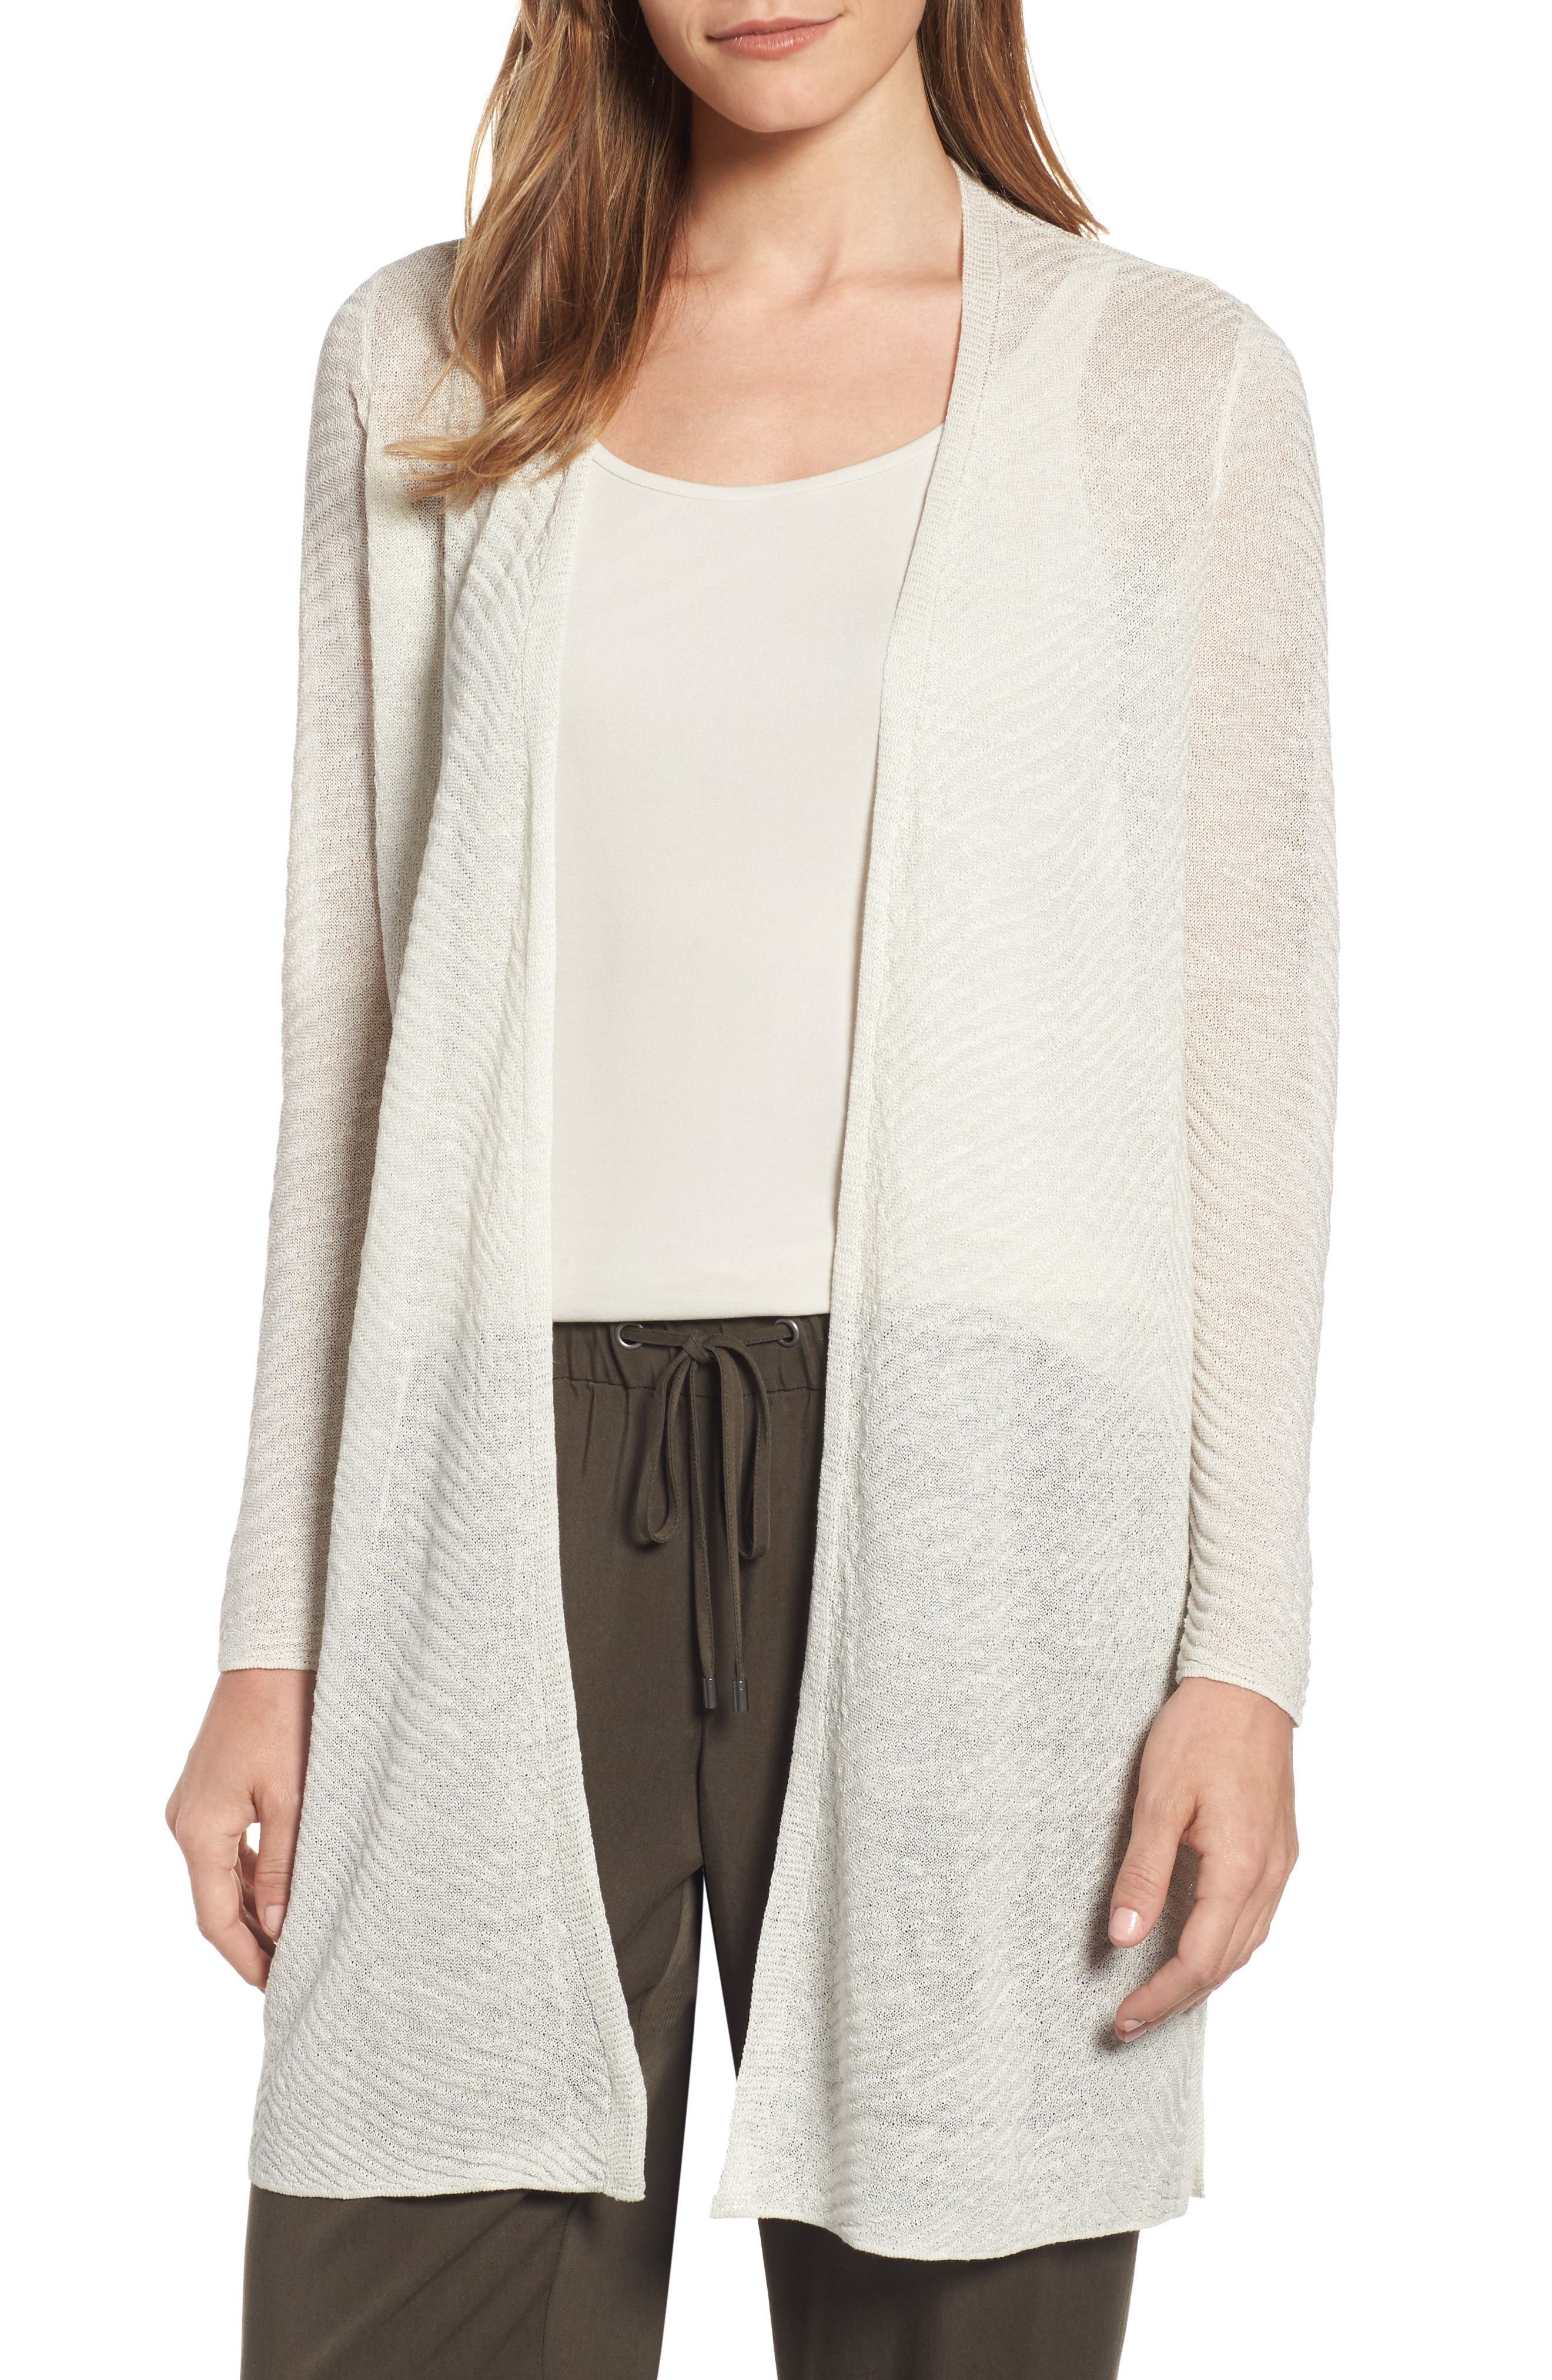 Eileen Fisher Hemp Blend Long Cardigan (Regular & Petite)